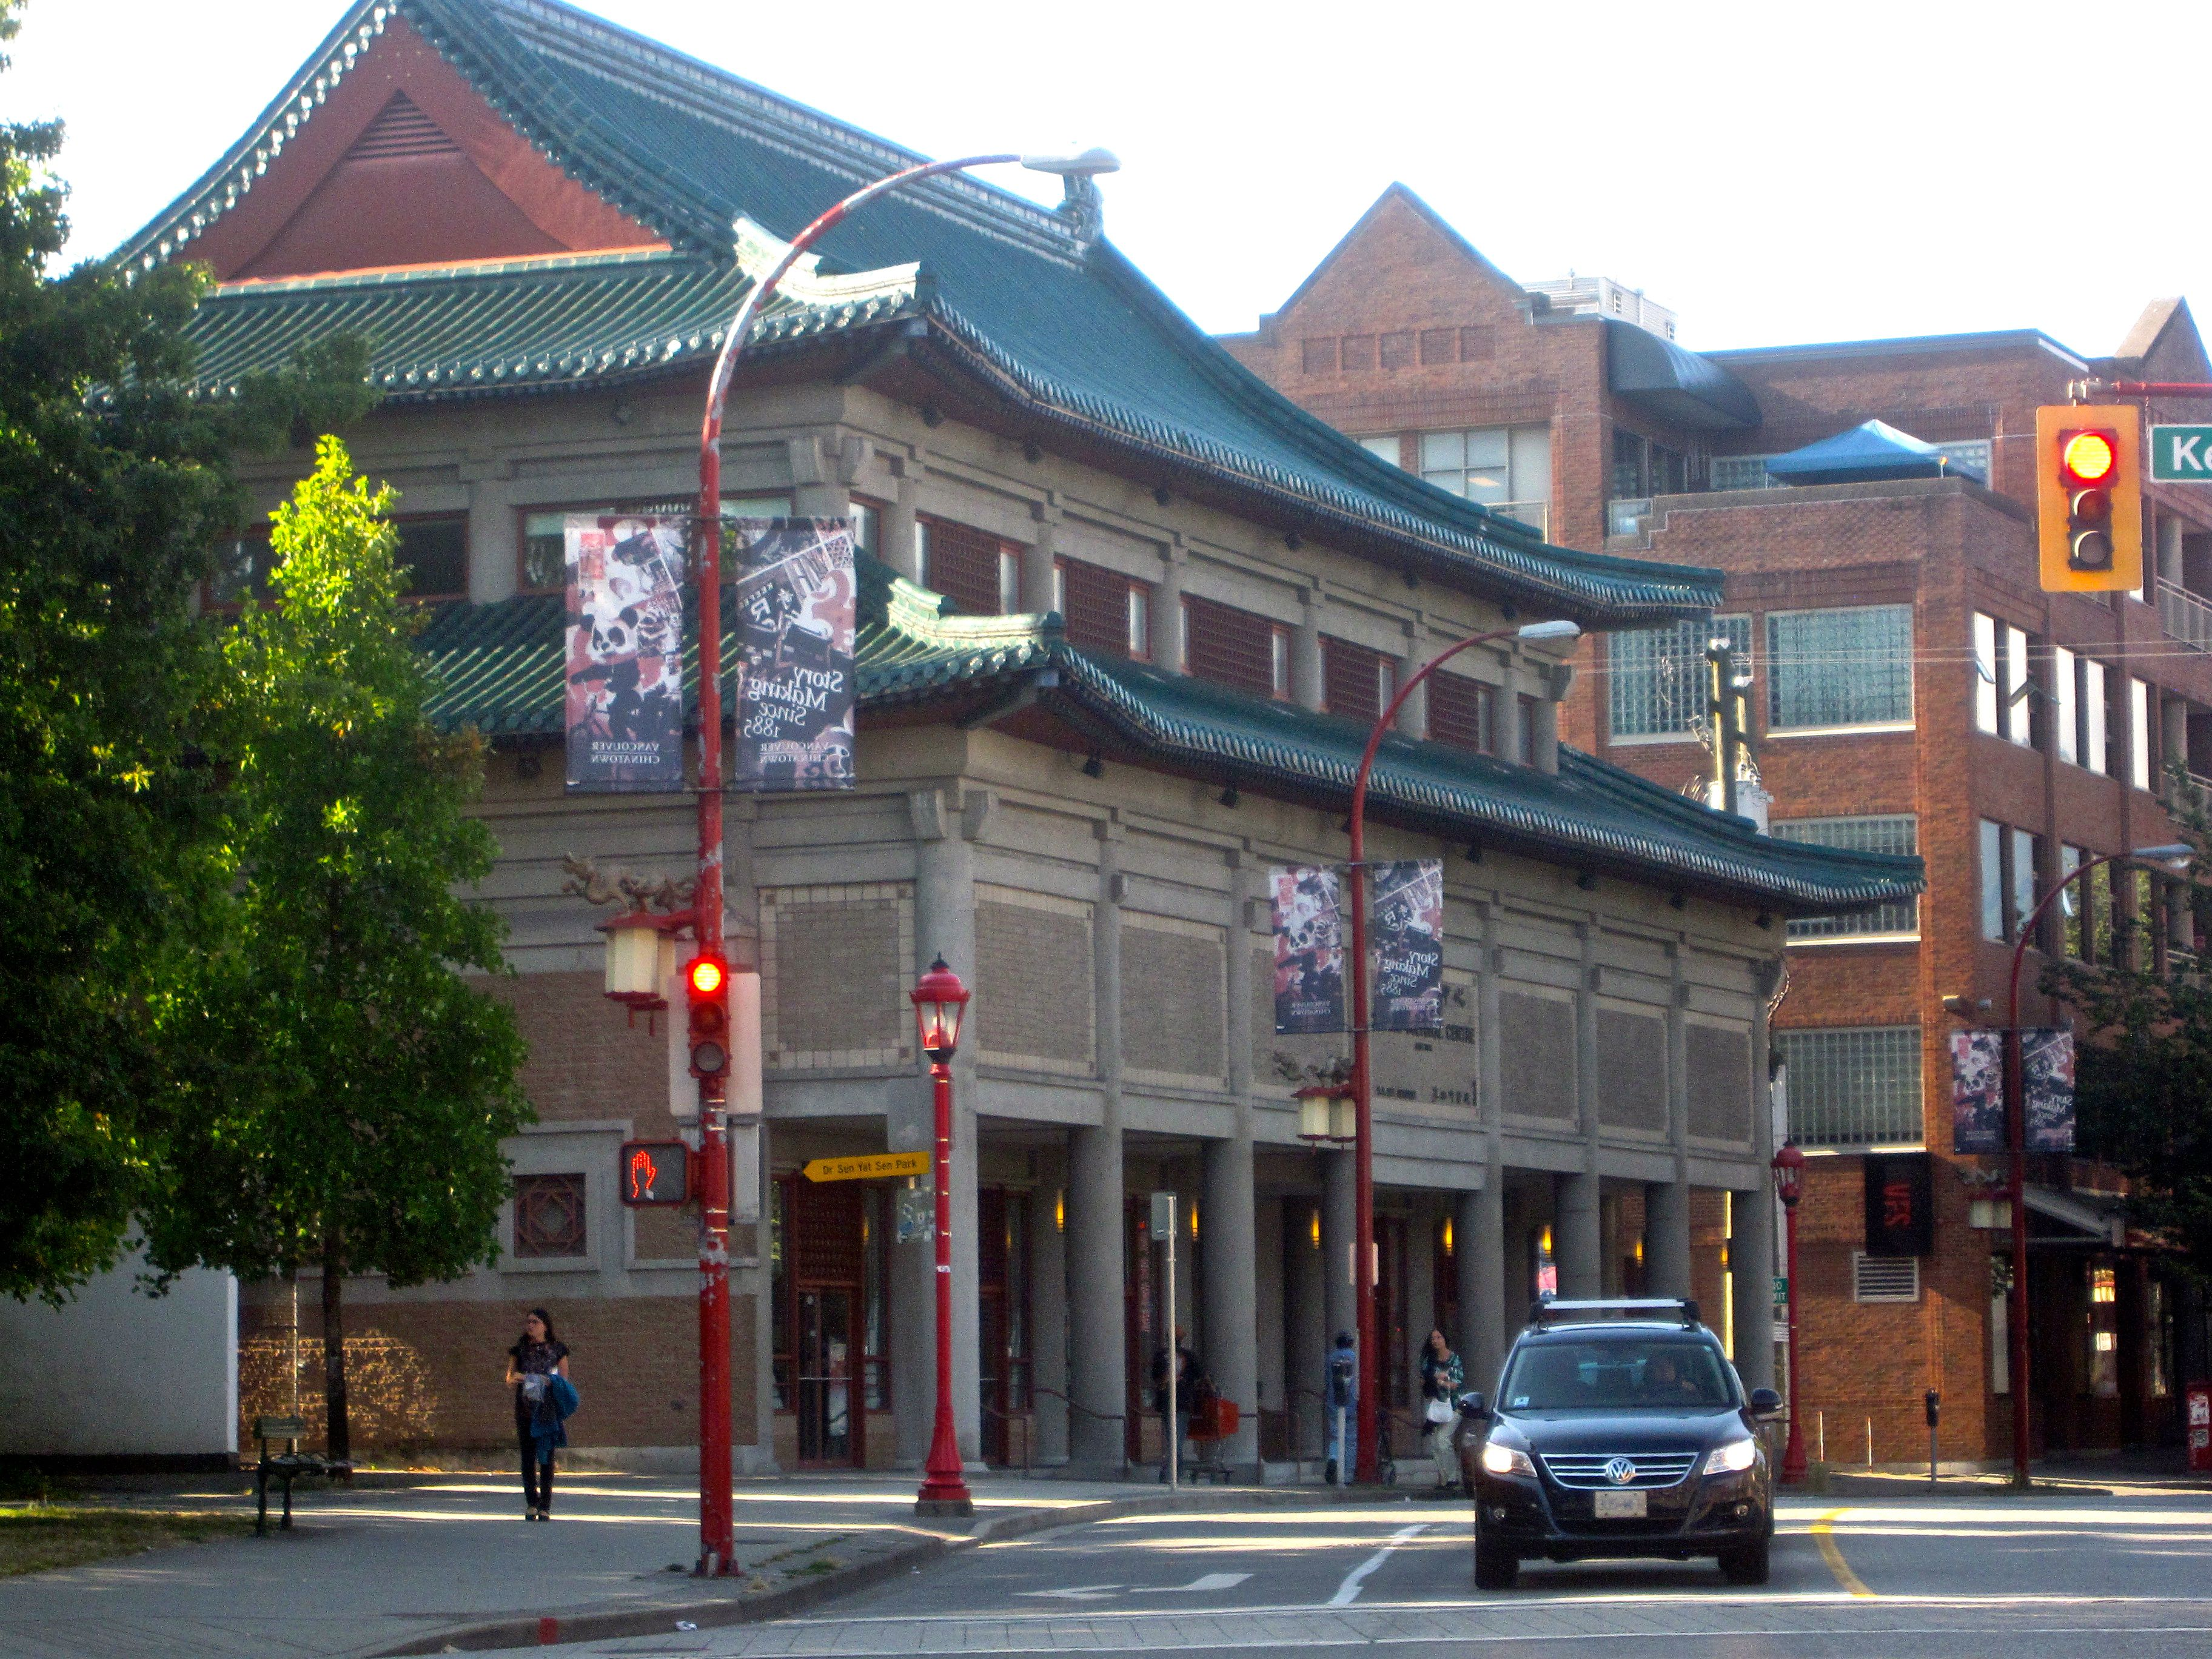 Chinatown in Vancouver, BC